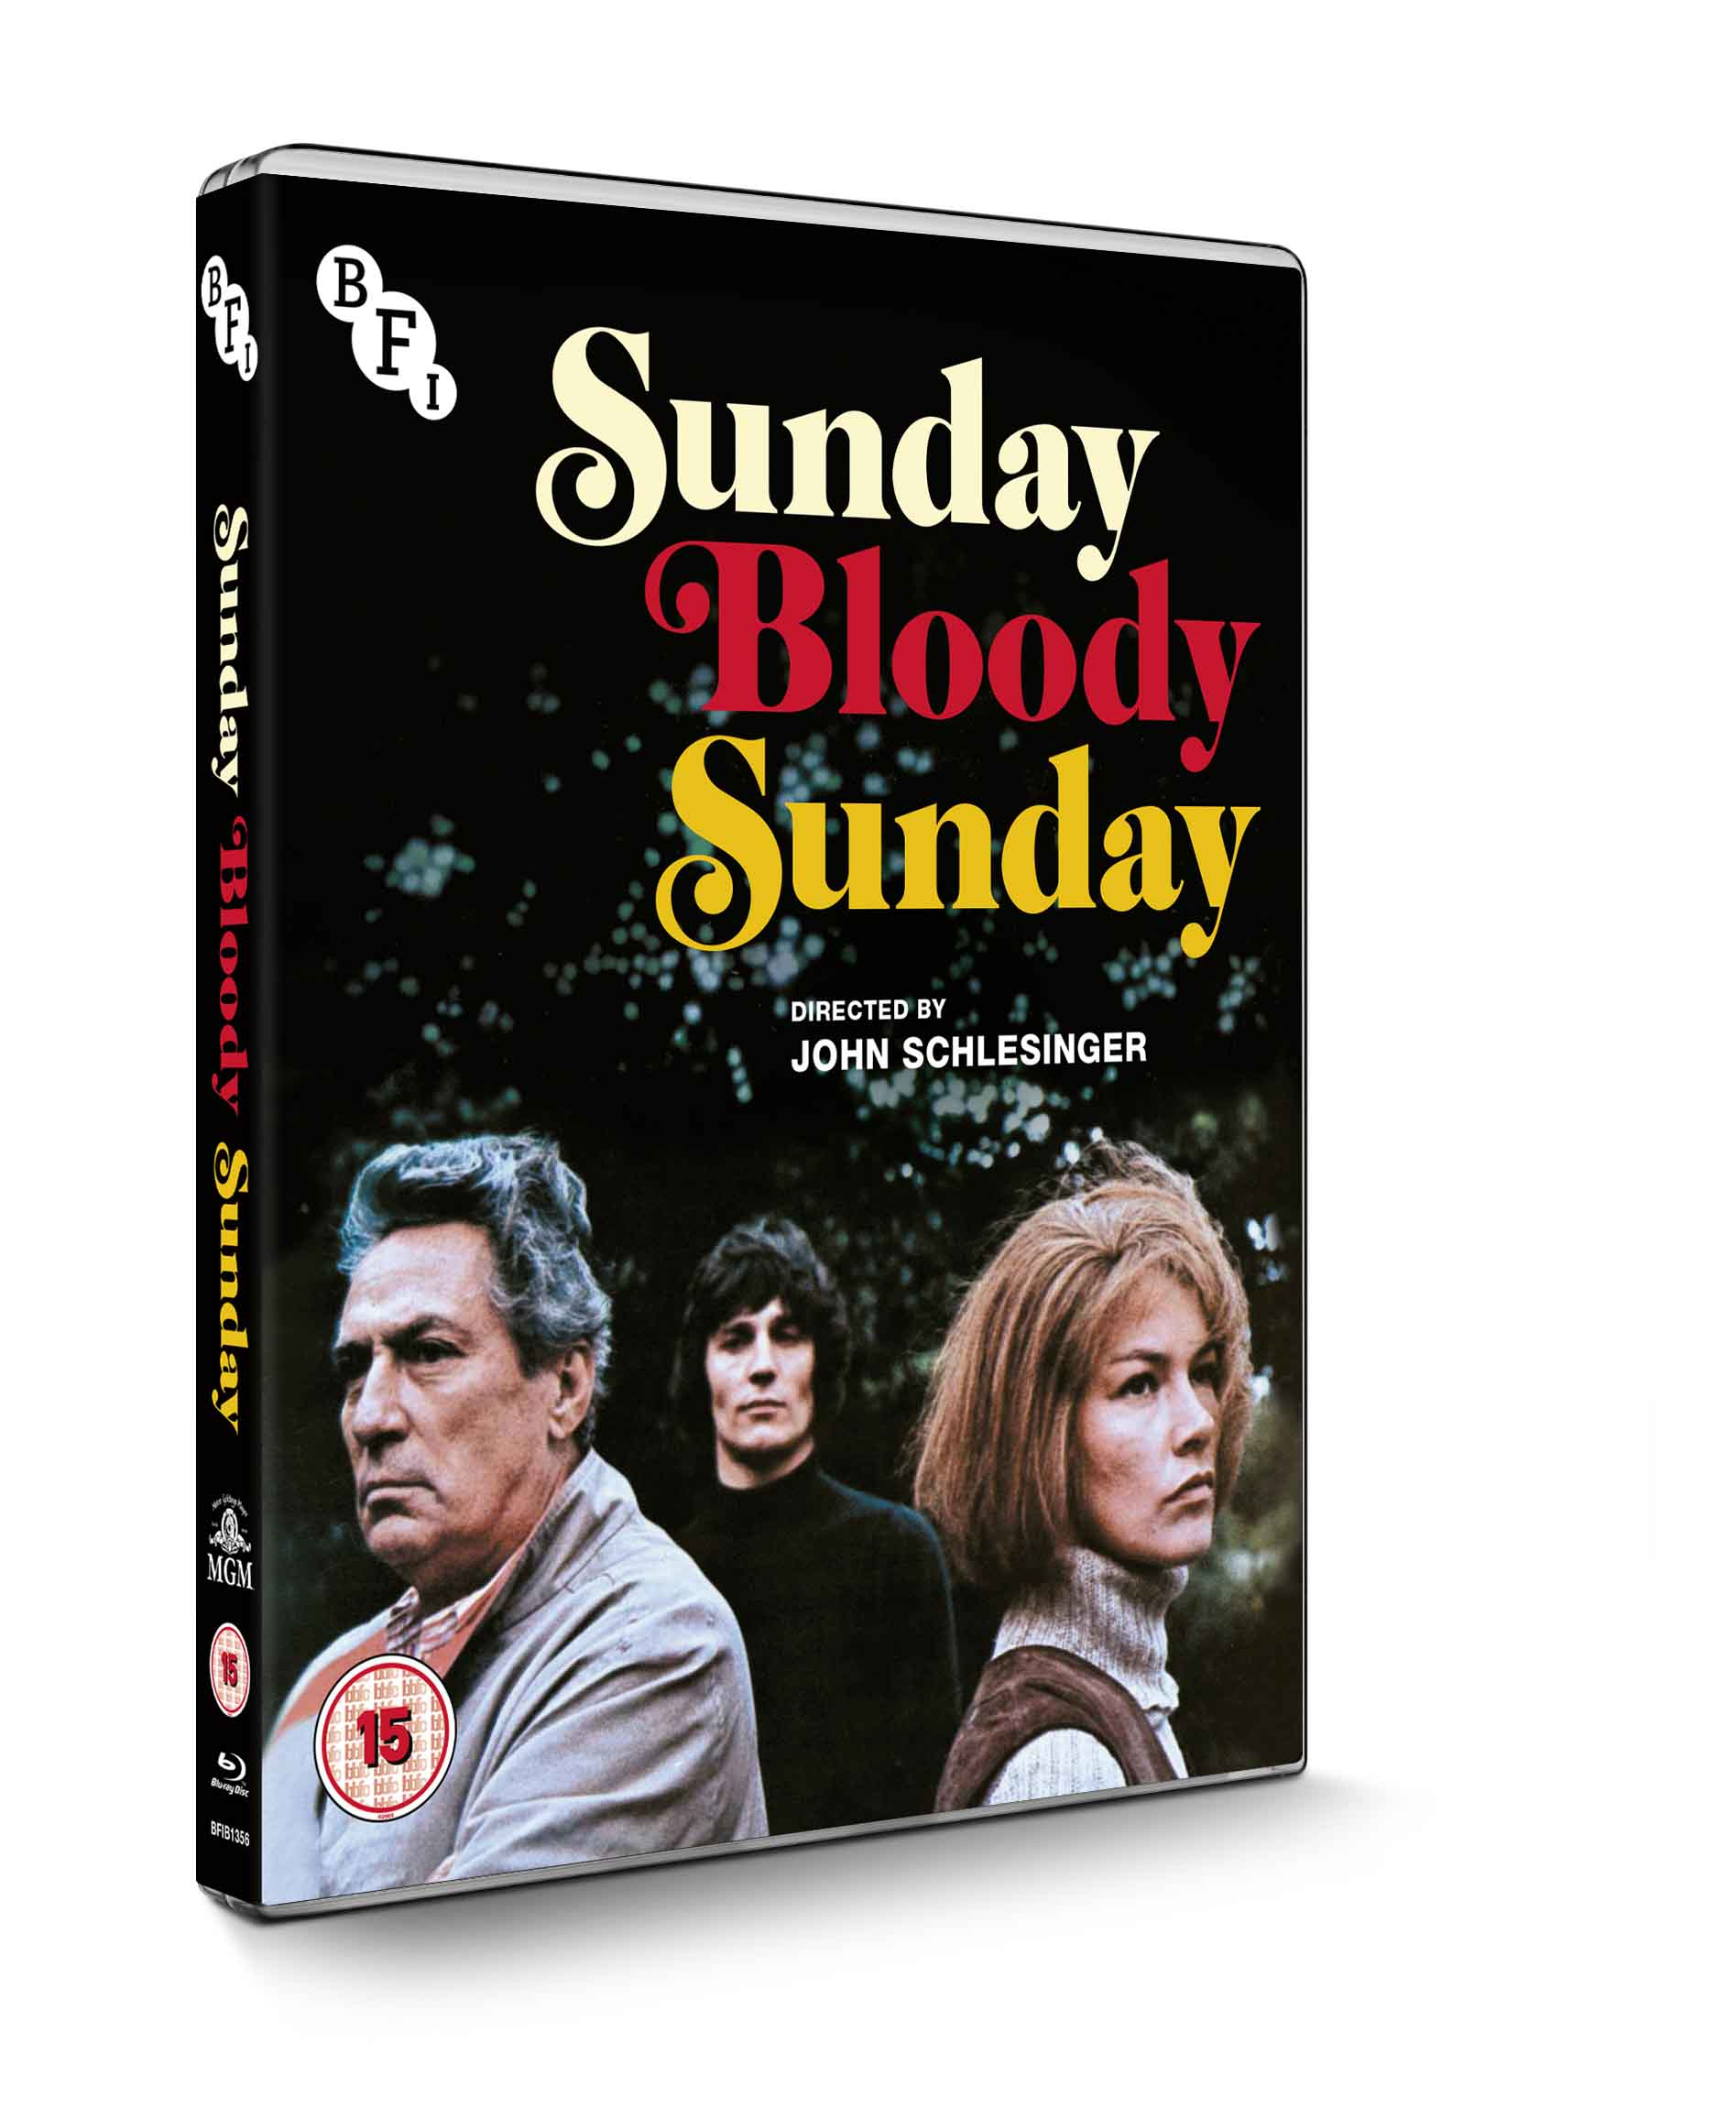 Buy Sunday Bloody Sunday (Blu-ray)